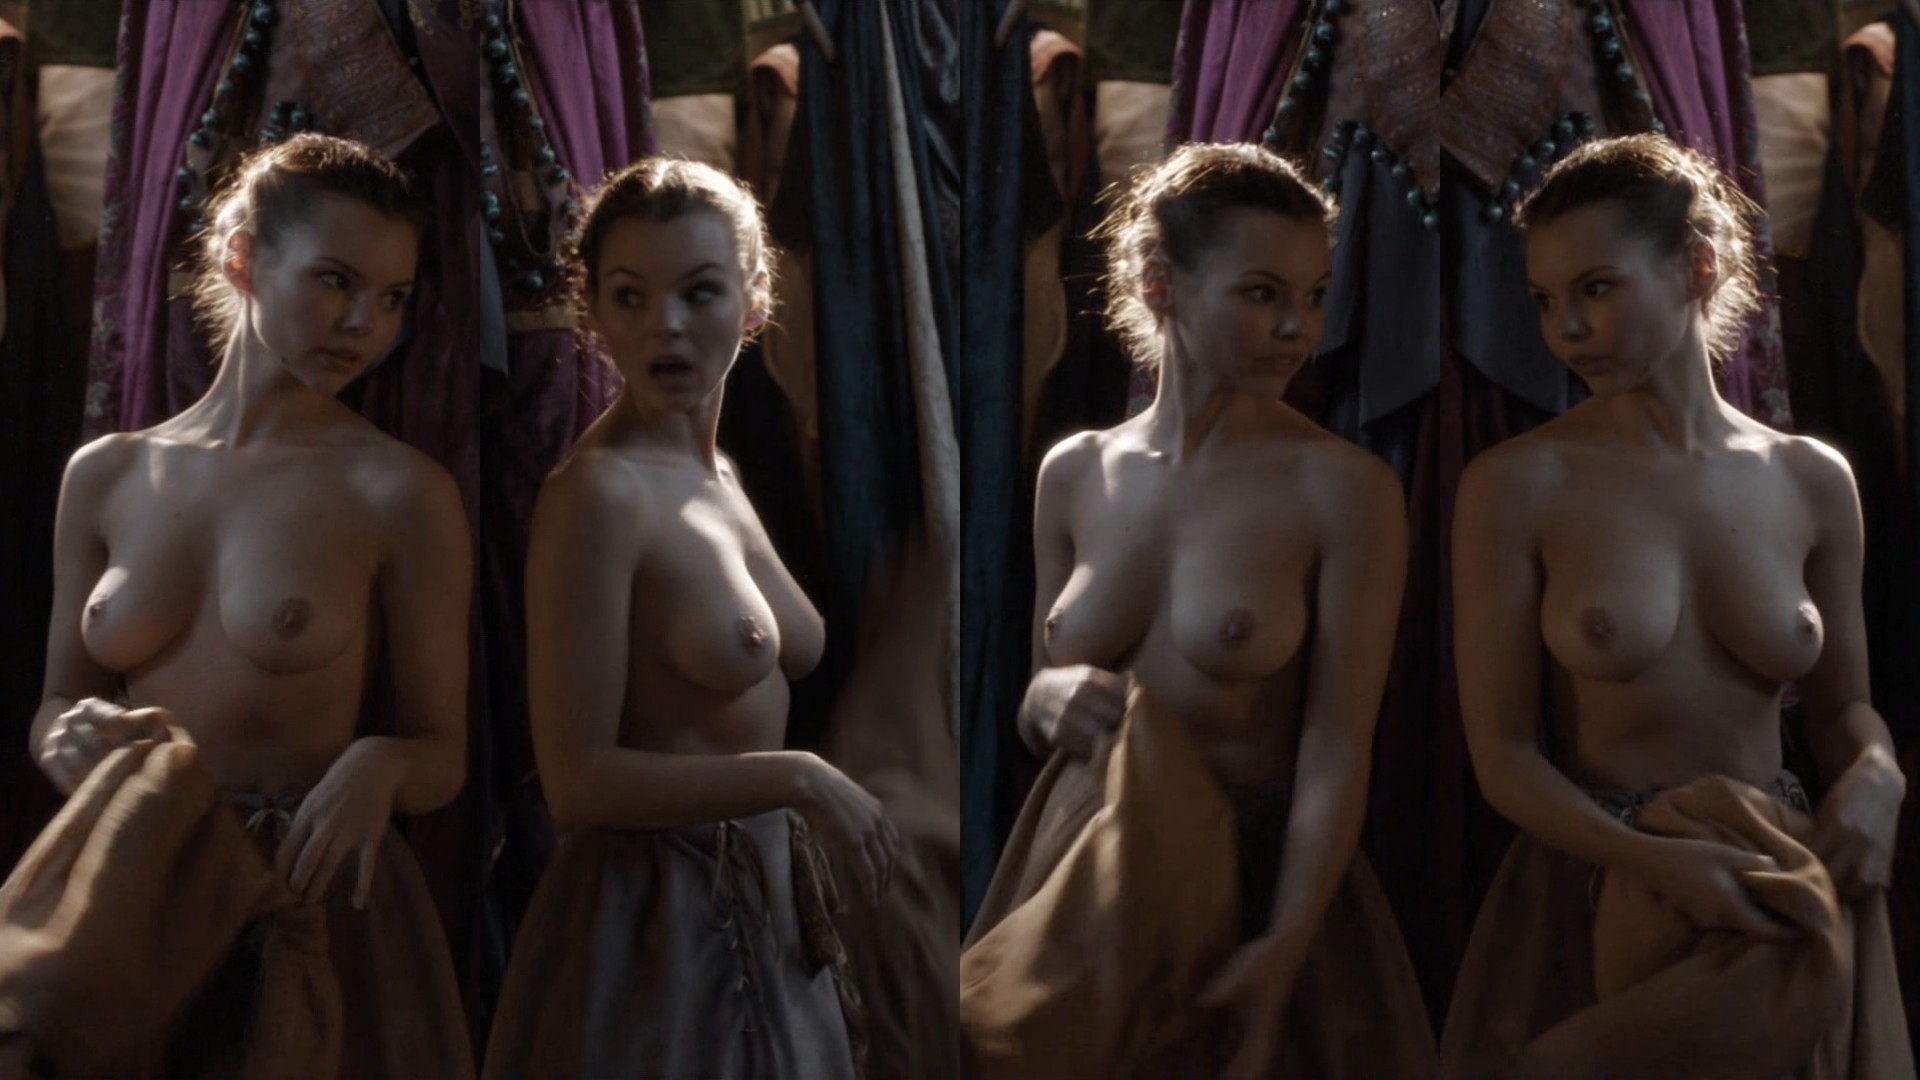 Naked Eline Powell In Game Of Thrones | Joss Picture Cam